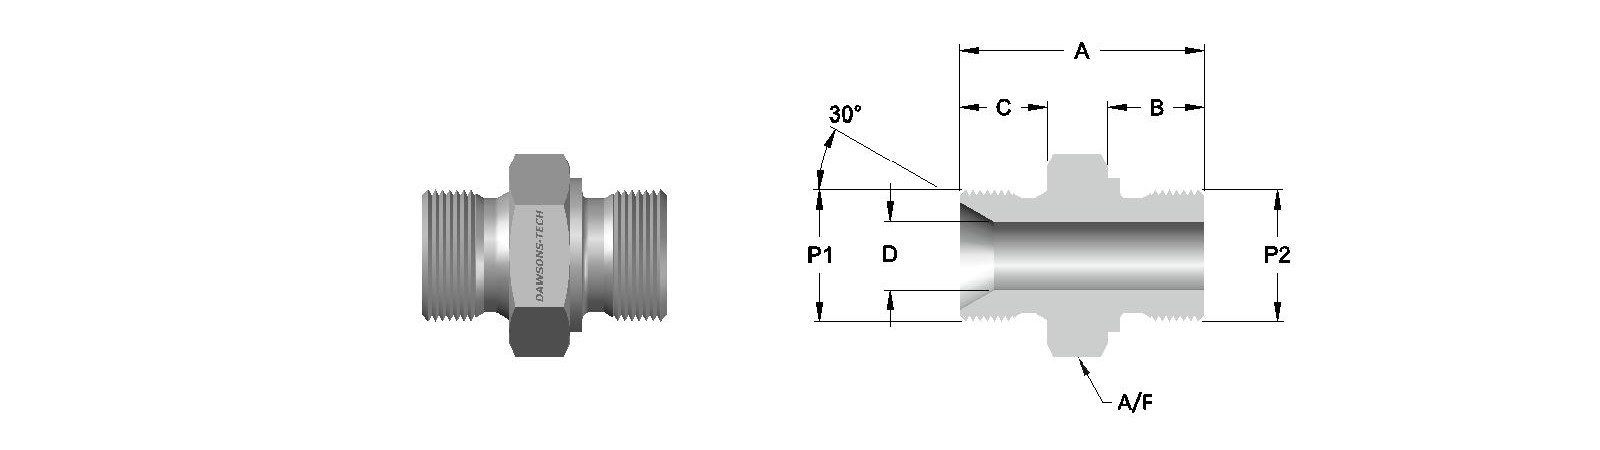 18 Male Adapter (OR) BSP (Parallel) to BSP (Parallel) Thread-Model